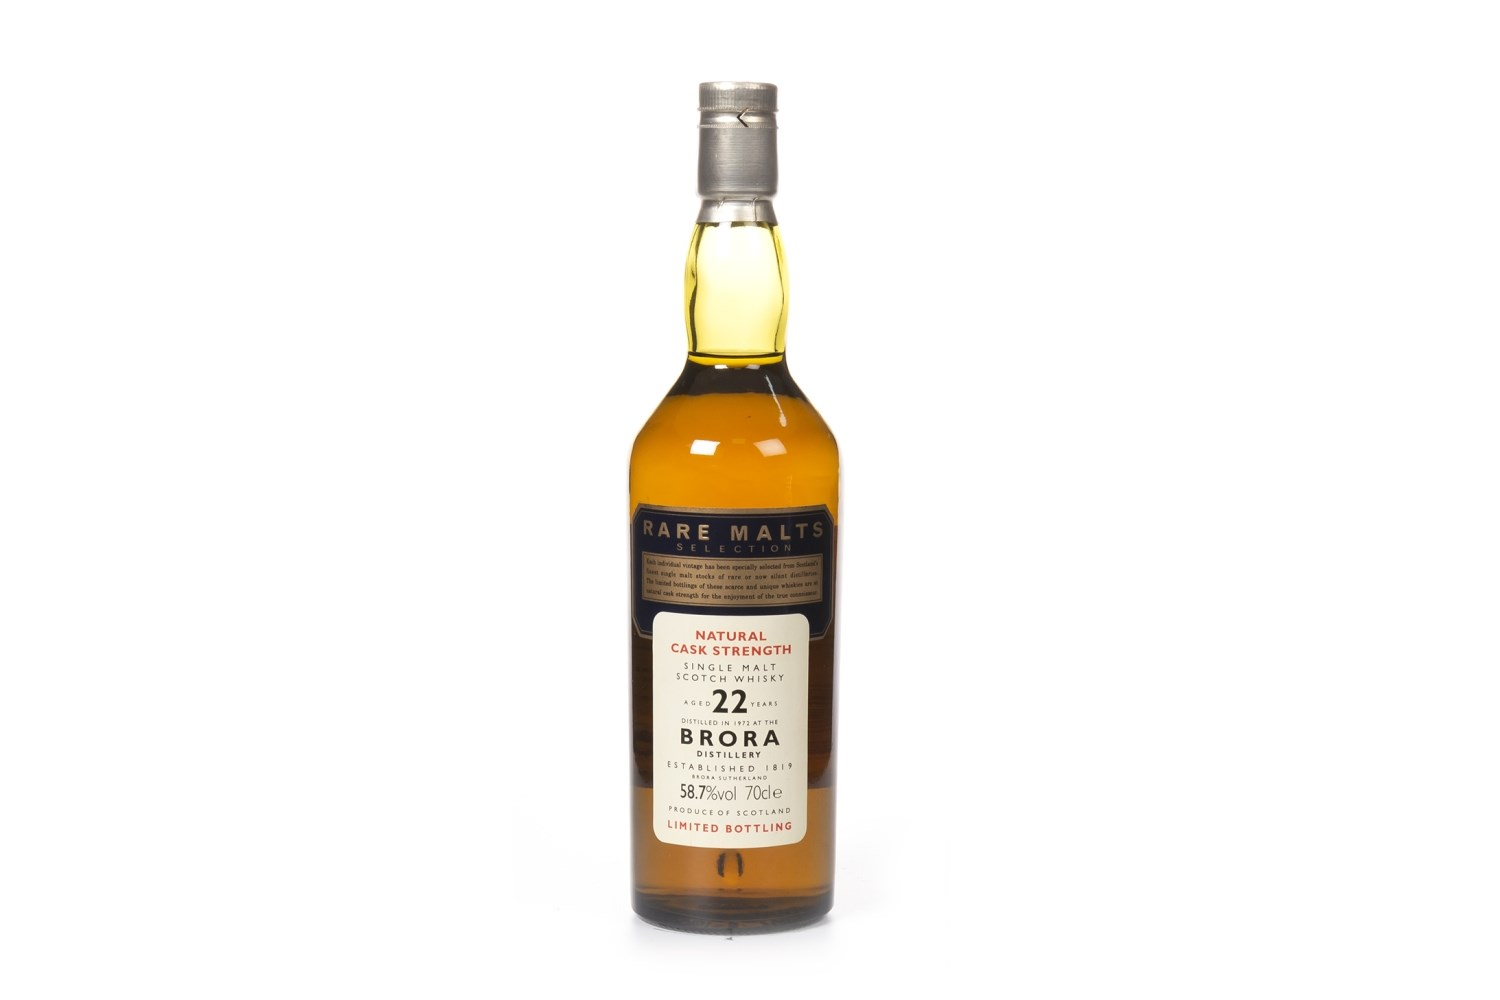 Lot 1028 - BRORA 1972 RARE MALTS AGED 22 YEARS